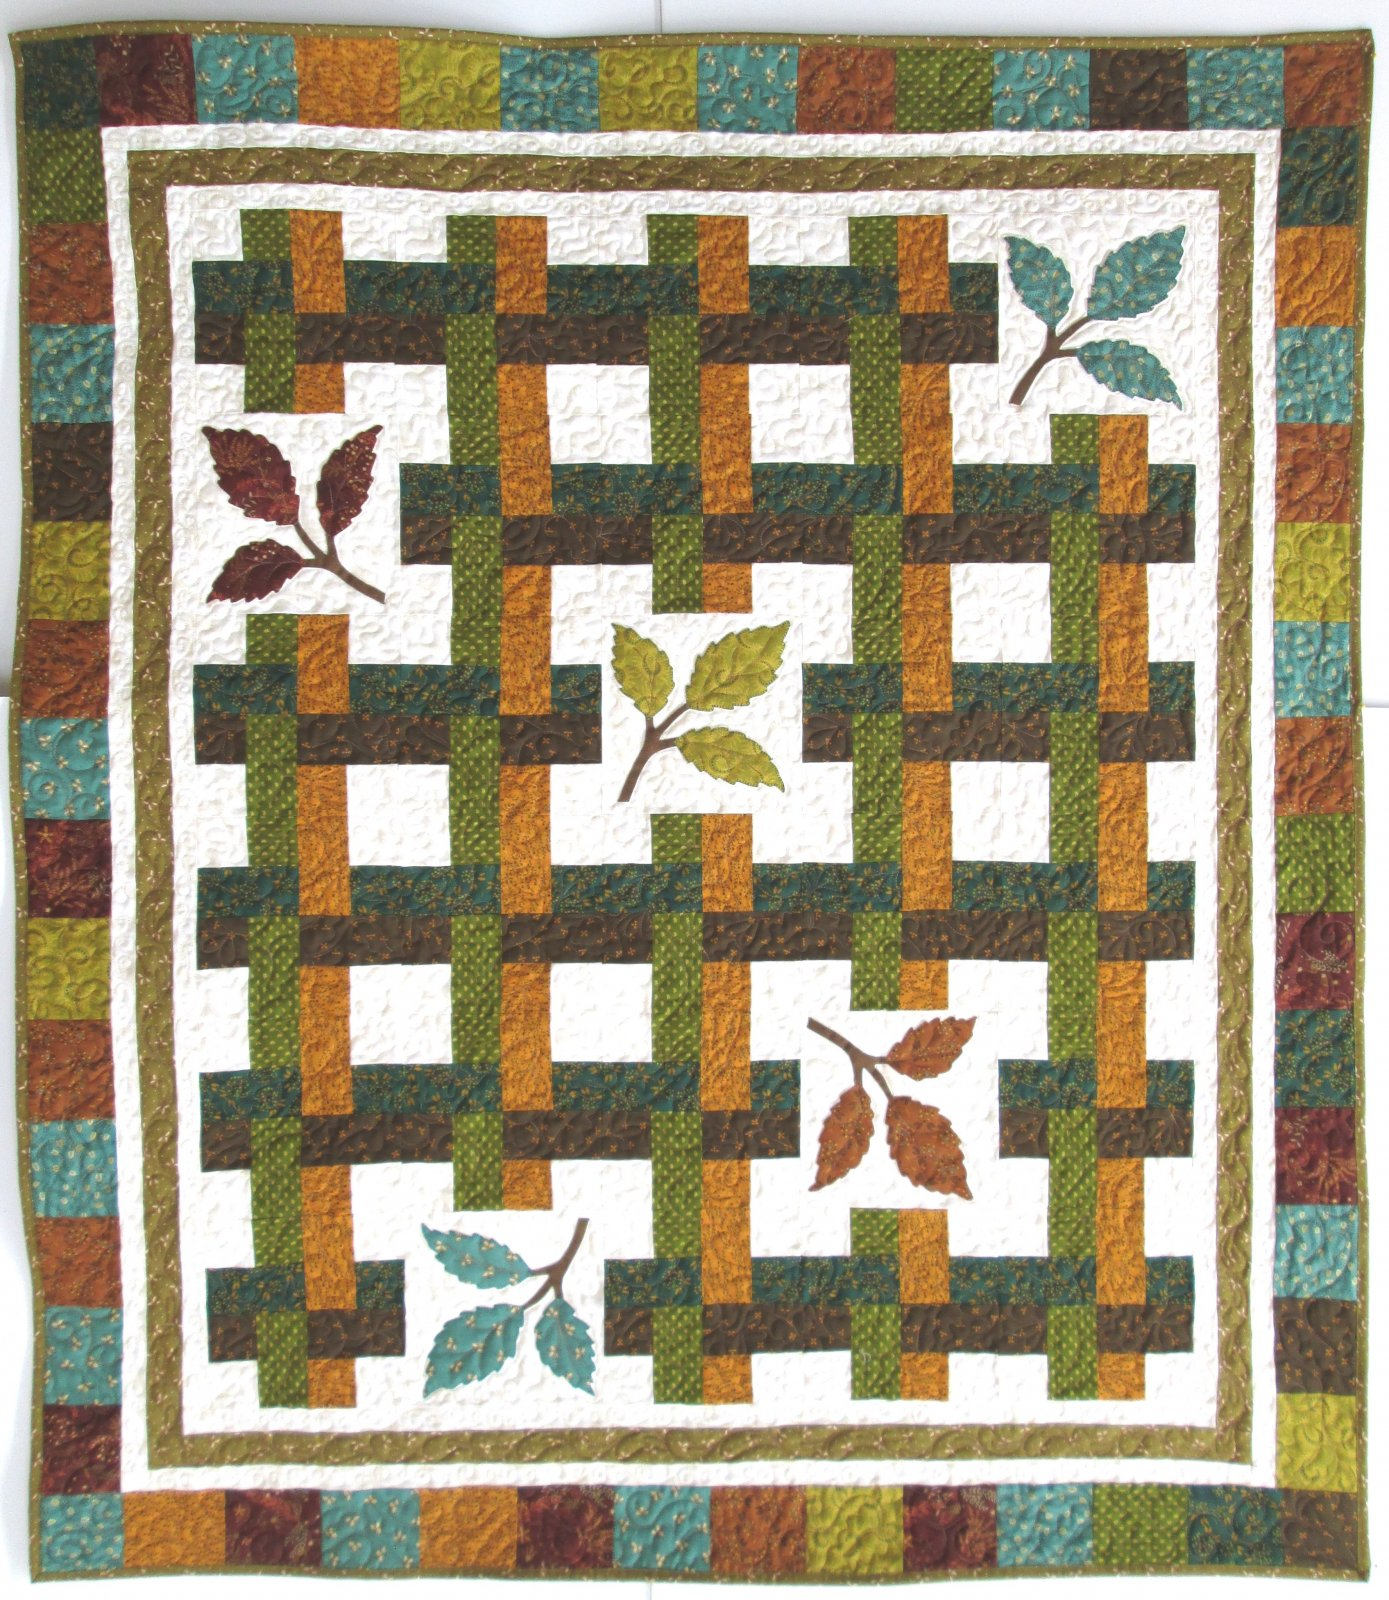 Reflections of Fall October Morning Quilt Kit